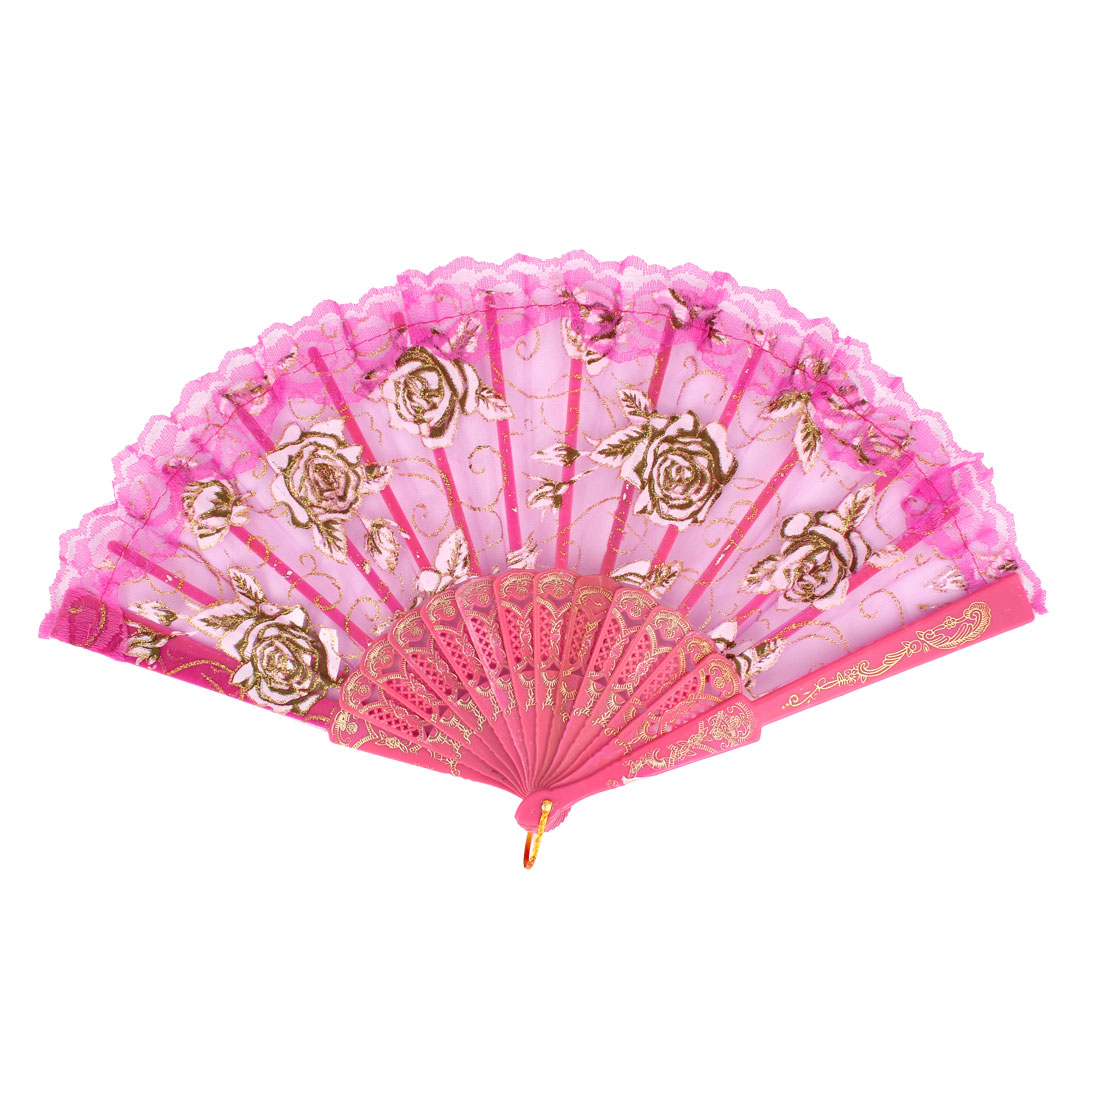 Fuchsia Carved Plastic Rib Lace Edge Rose Pattern Dancing Folding Hand Fan